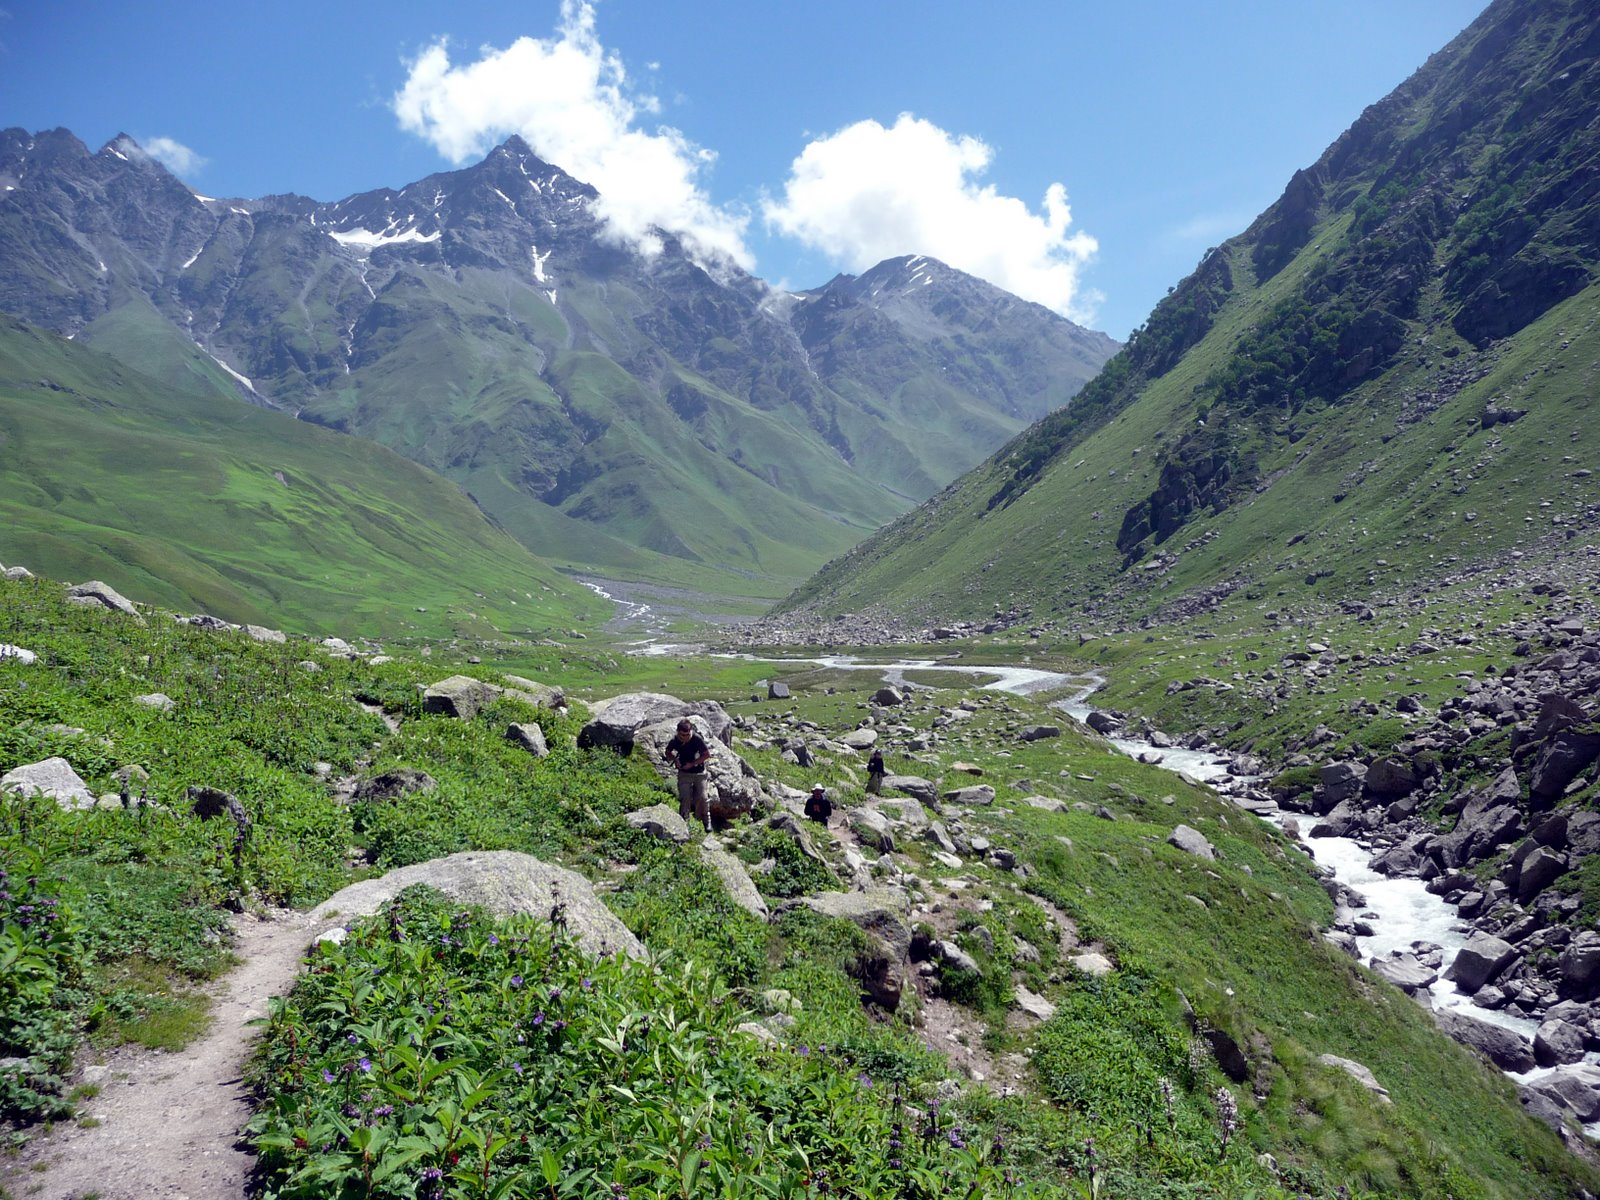 Trekking in the green mountains of Kinnaur